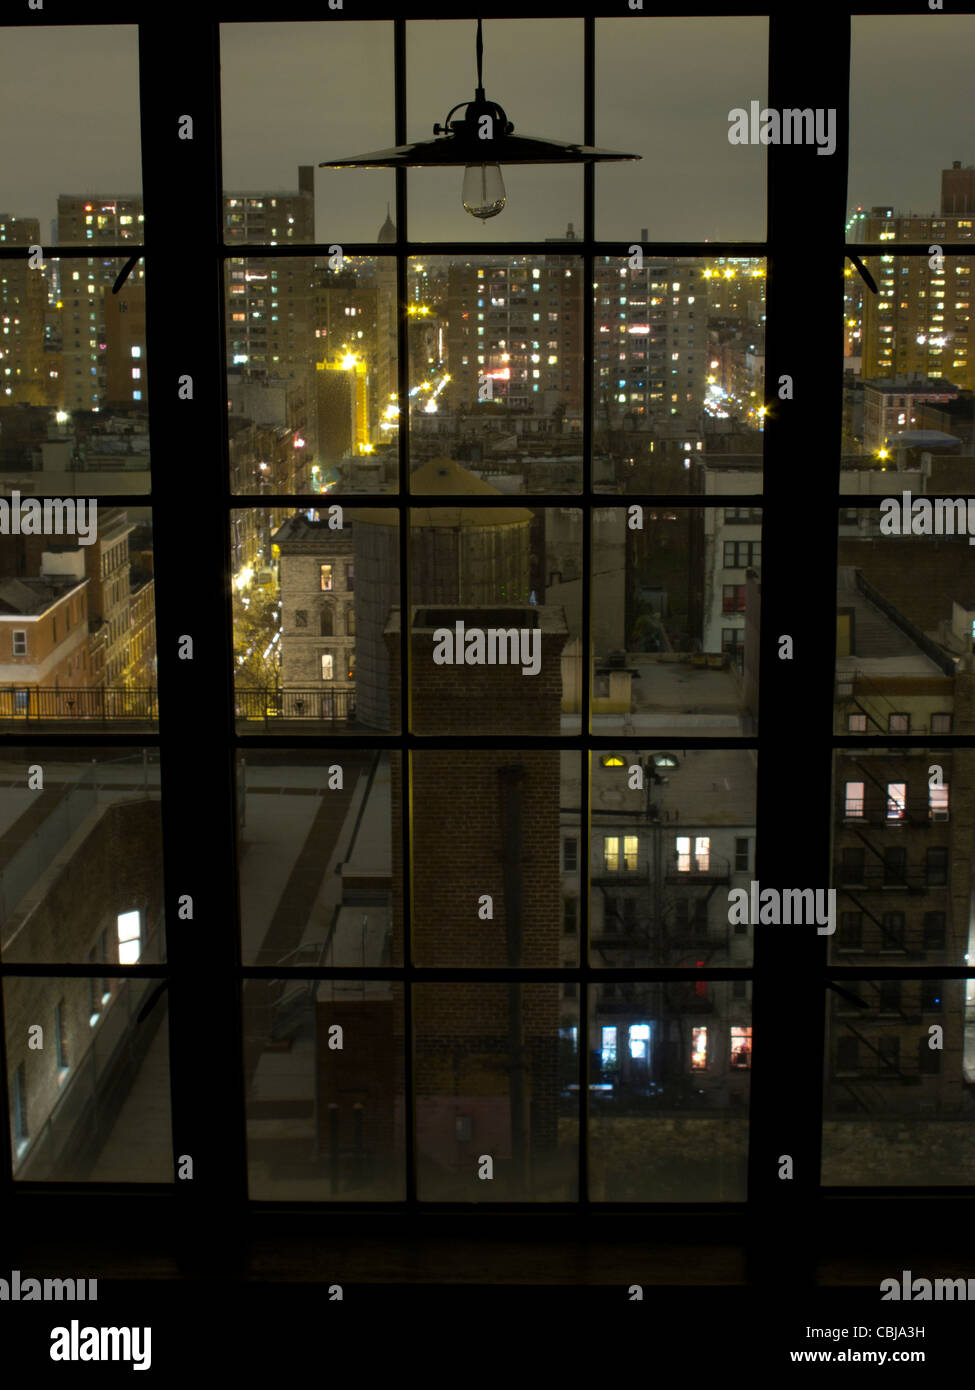 12th floor window at night overlooking NYC York City, New York, USA - Stock Image